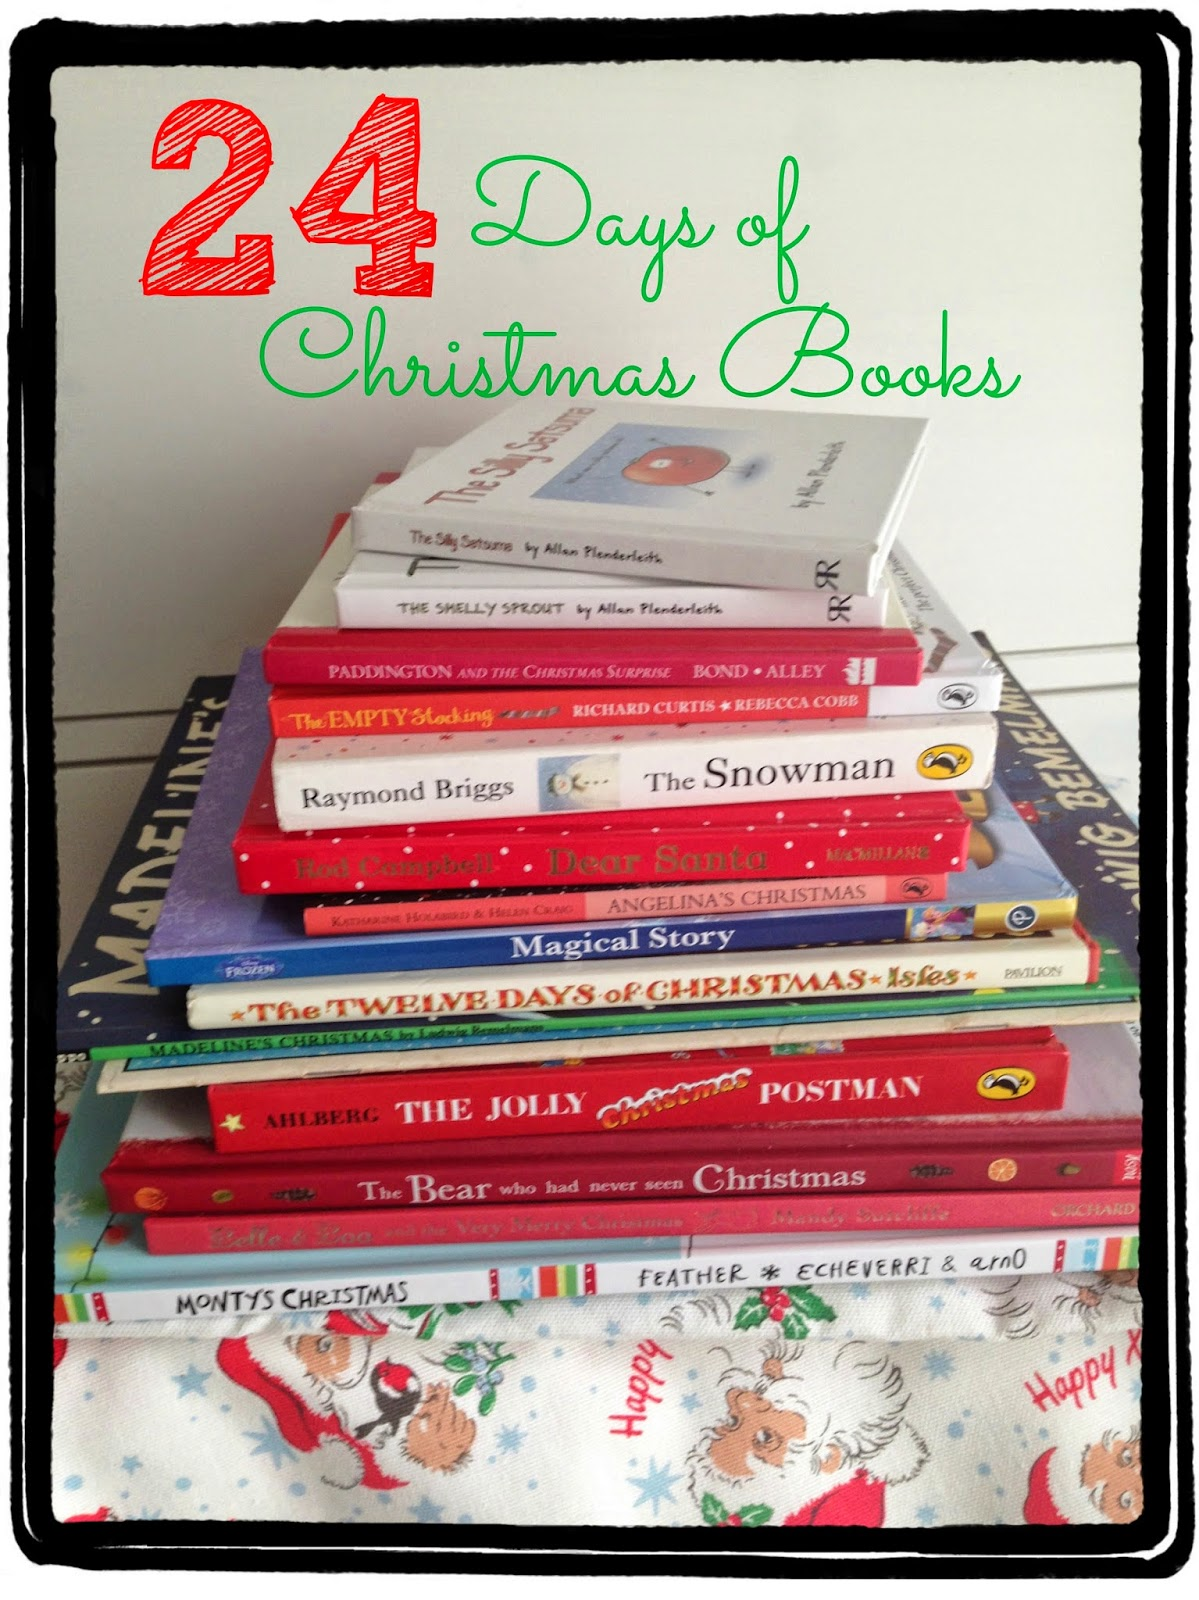 Our NEW family Christmas traditions (part 2) – 24 Days of Christmas tales | V. I. BOOKCLUB